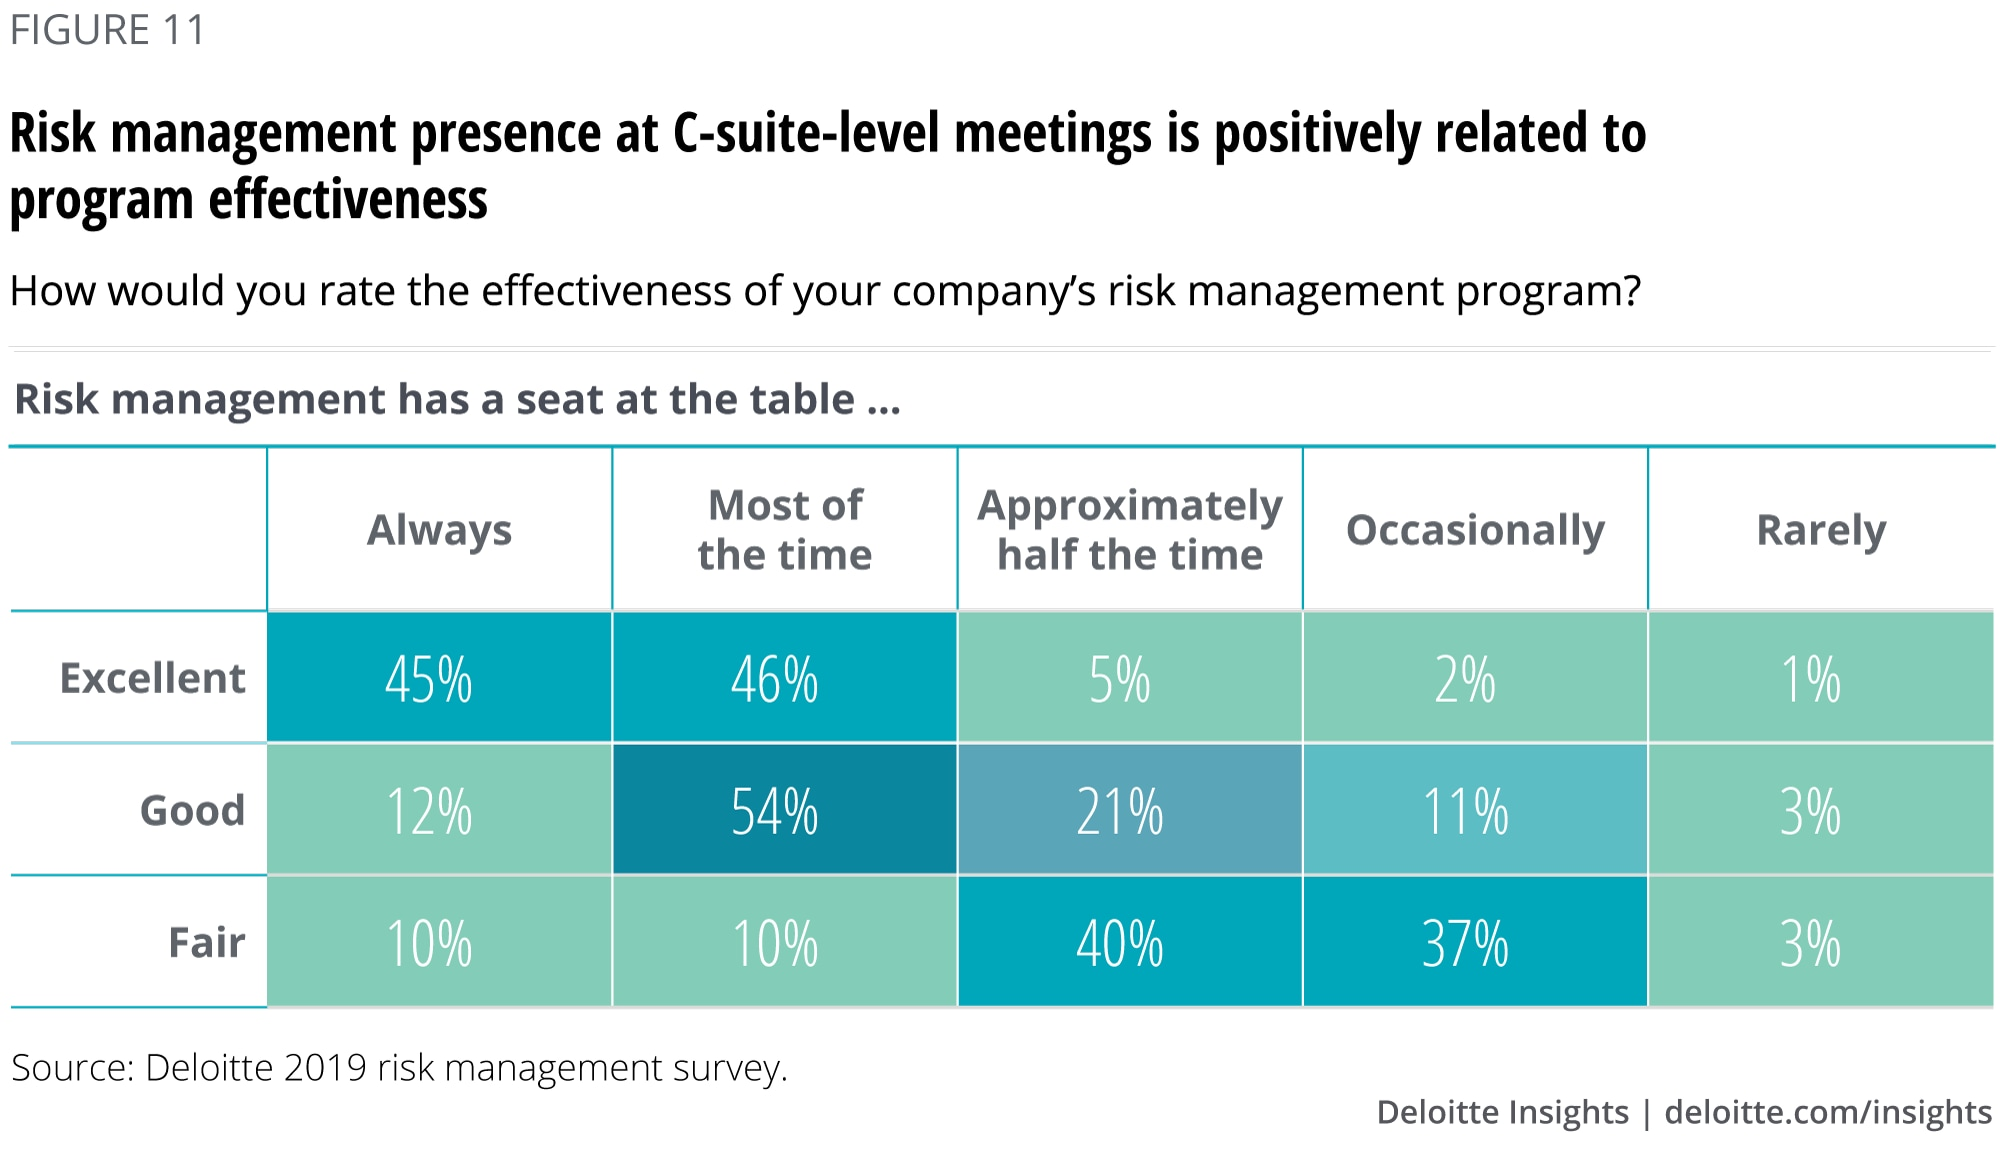 Risk management presence at C-suite-level meetings is positively related to program effectiveness